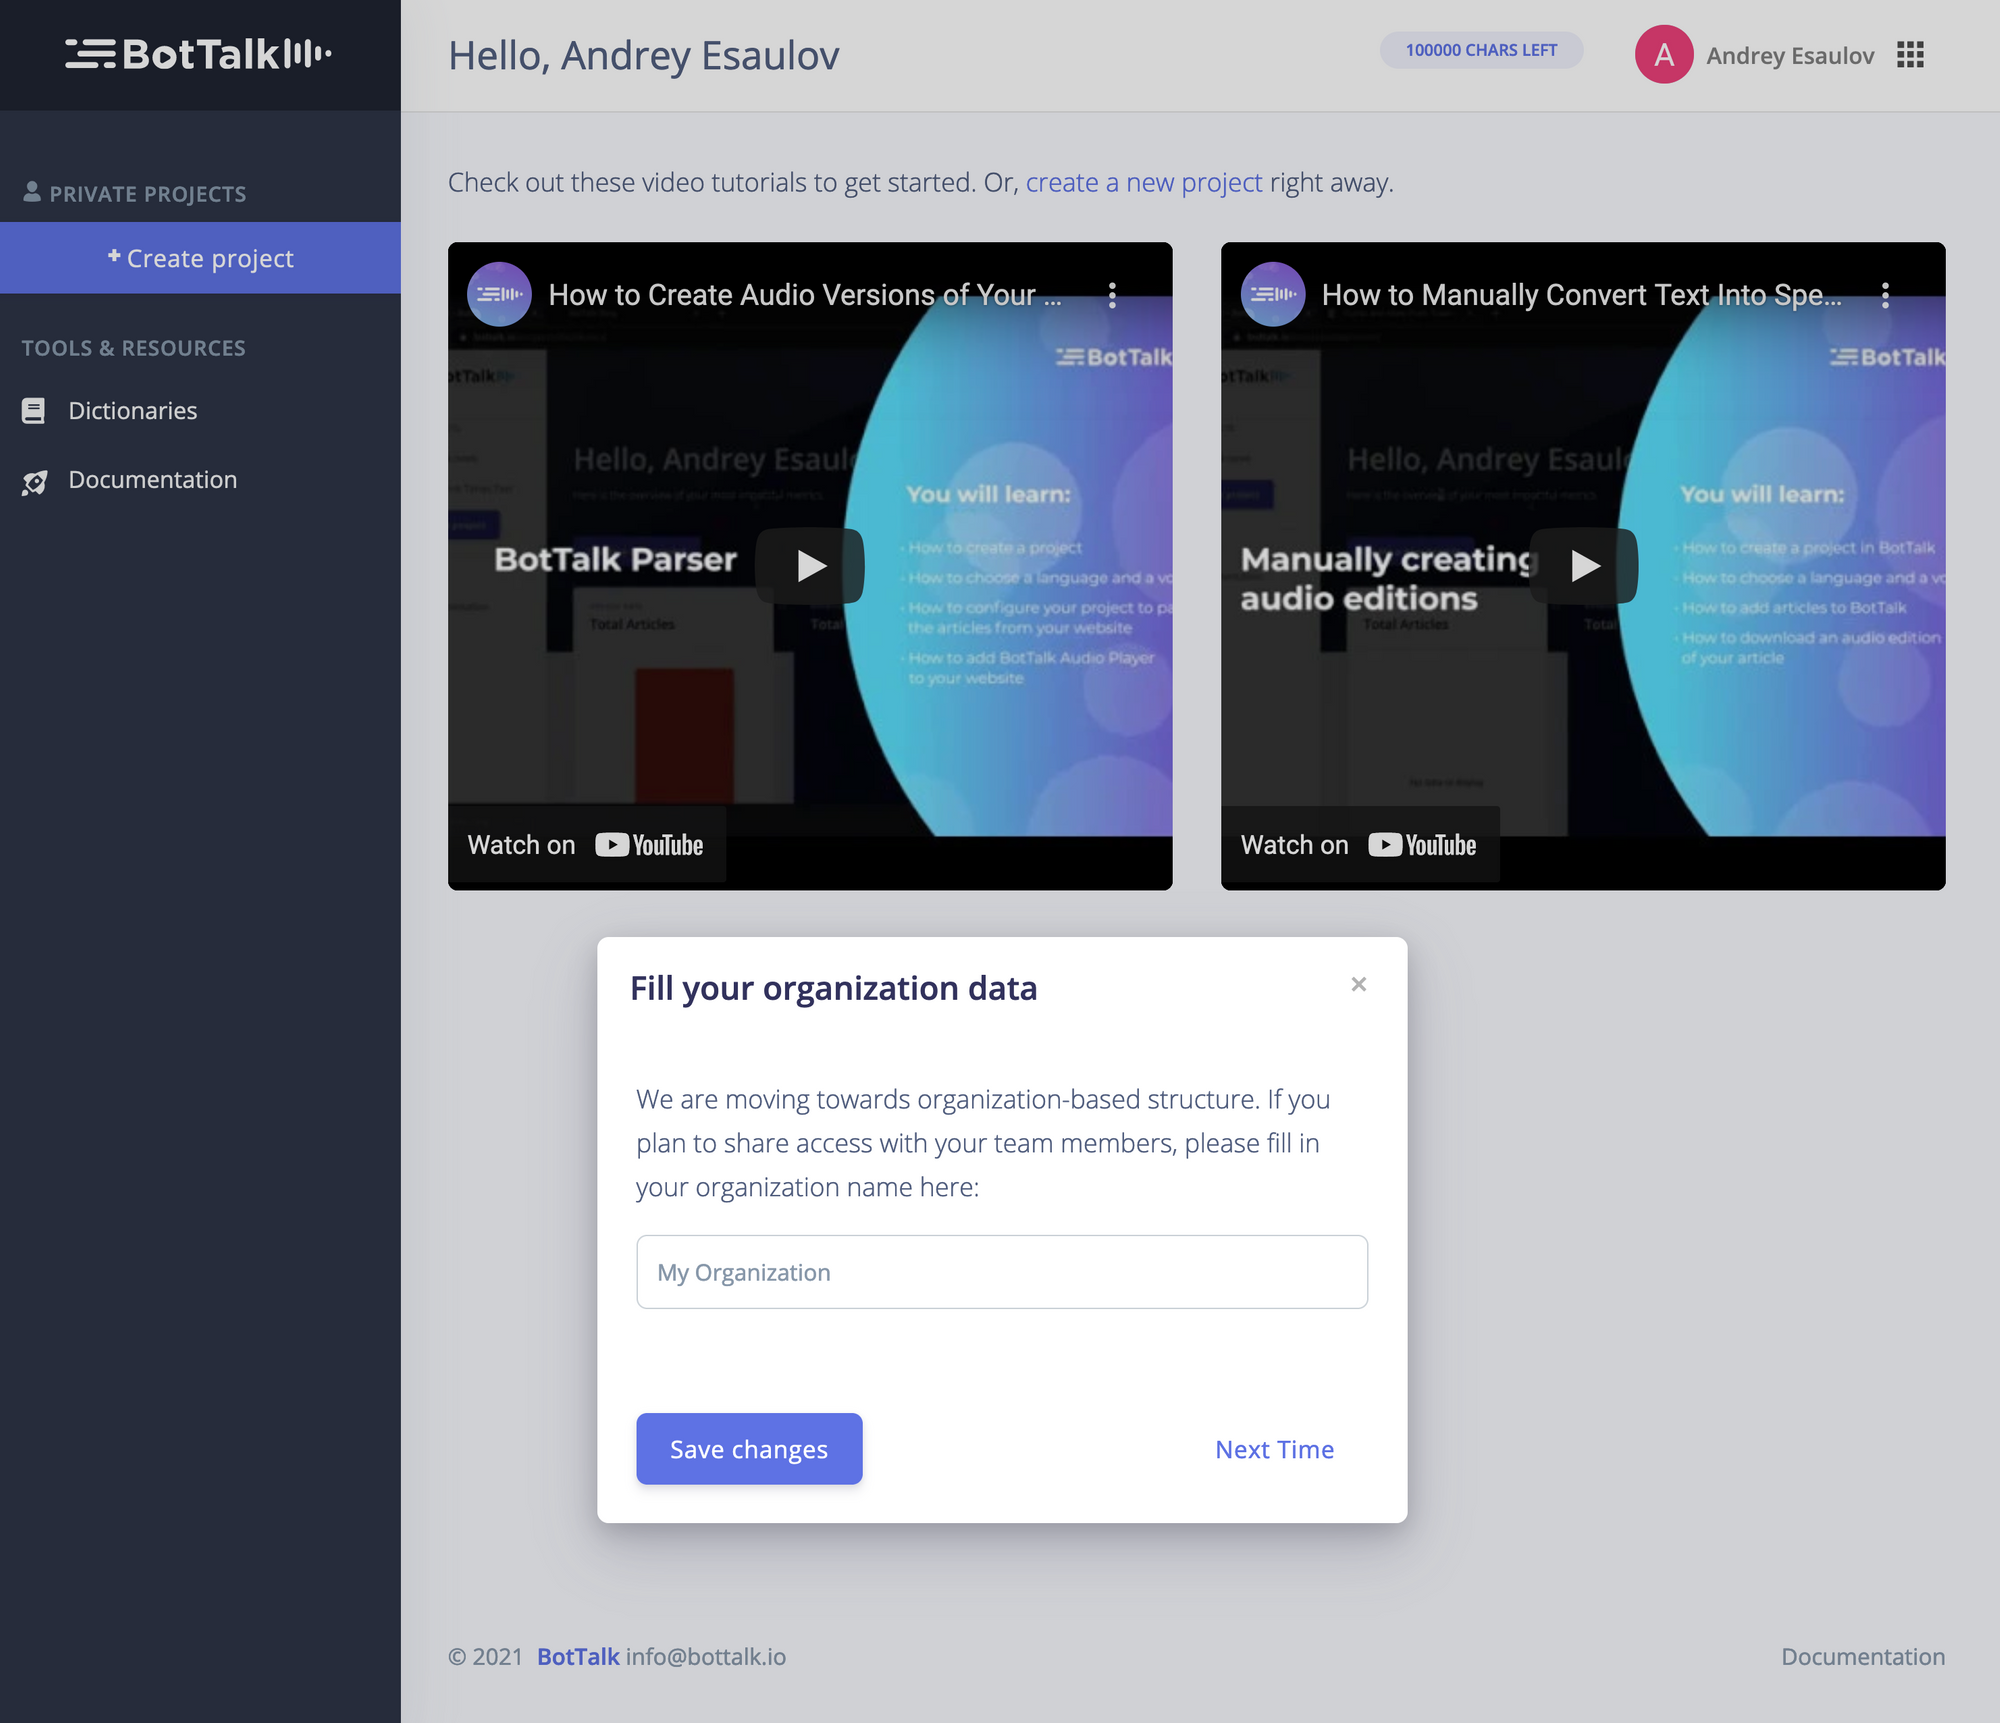 BotTalk dashboard after an account has been created successfully